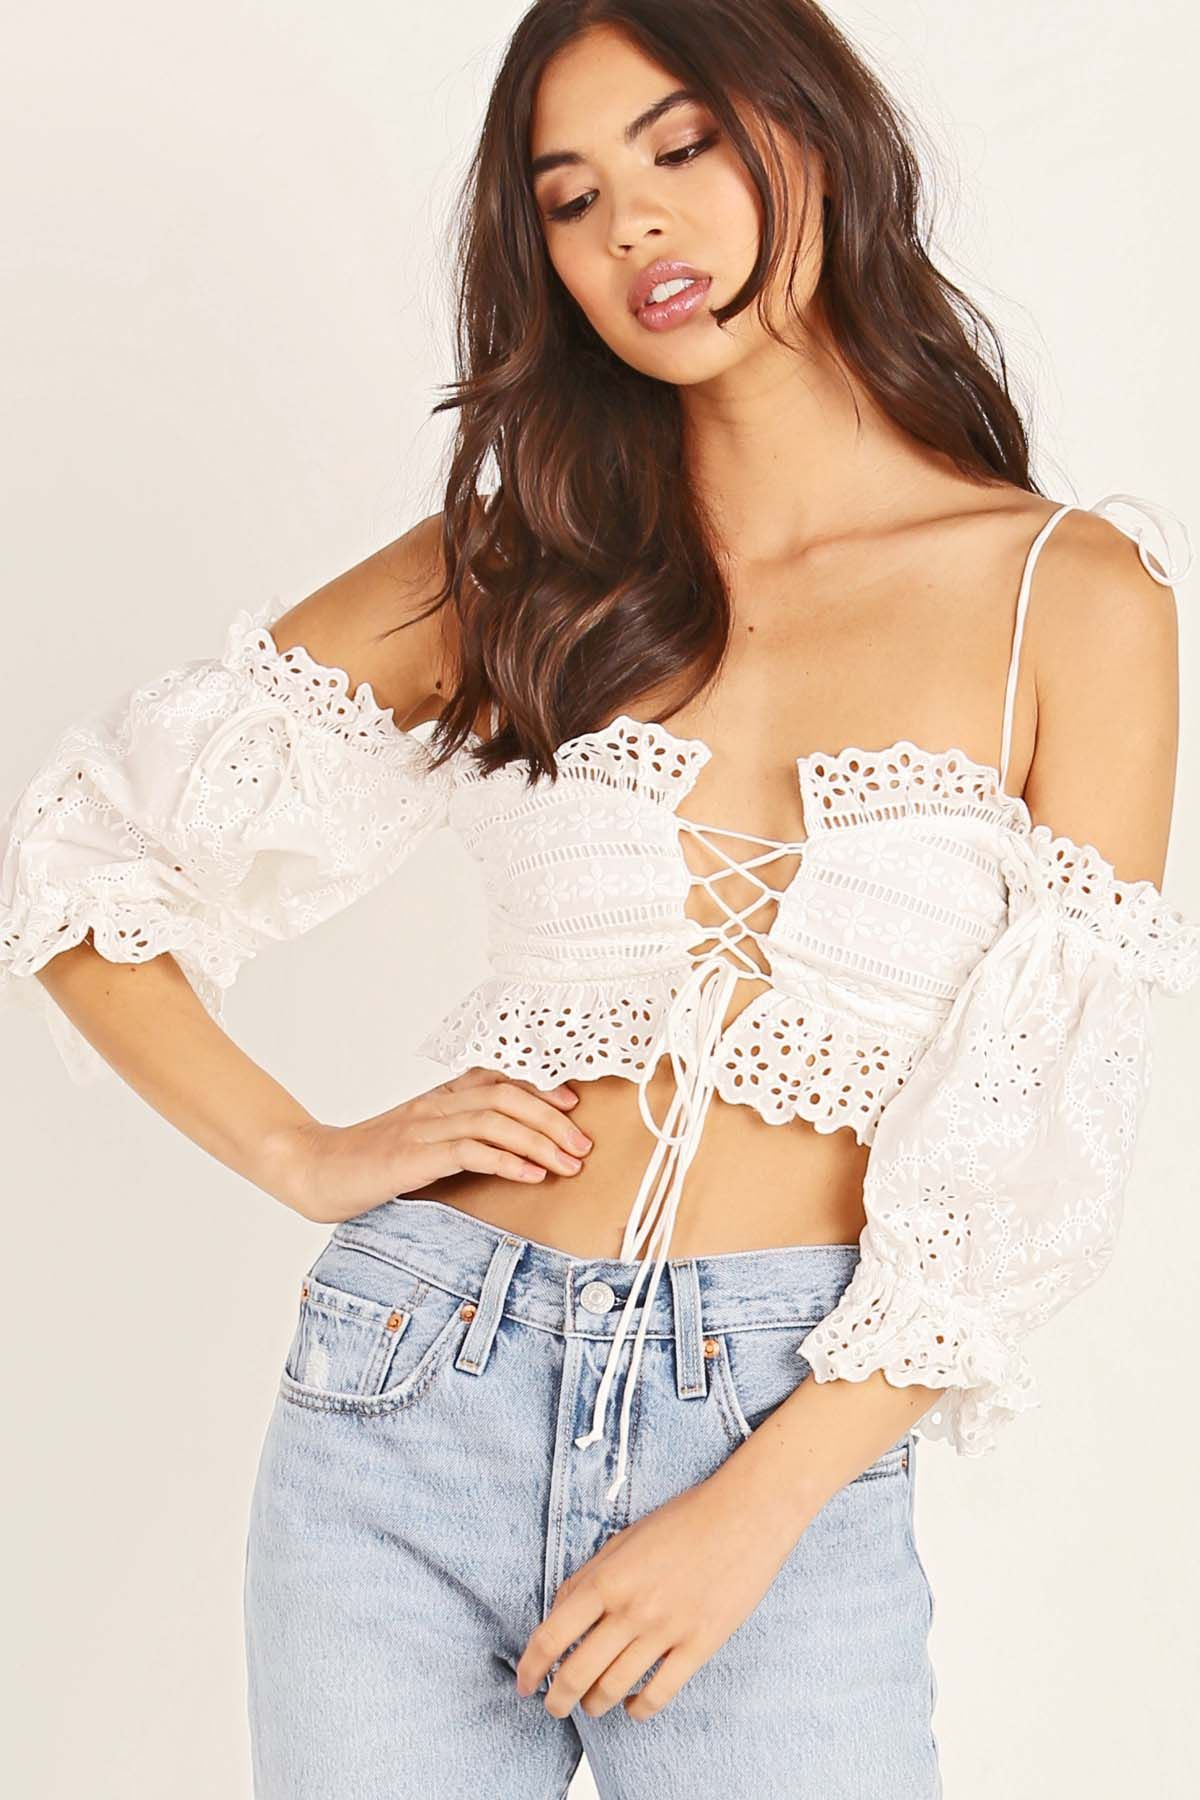 897db9b01a927 For love and lemons annabella eyelet crop top. White off the shoulder top  with lace up front detail! The perfect top to take to coachella!